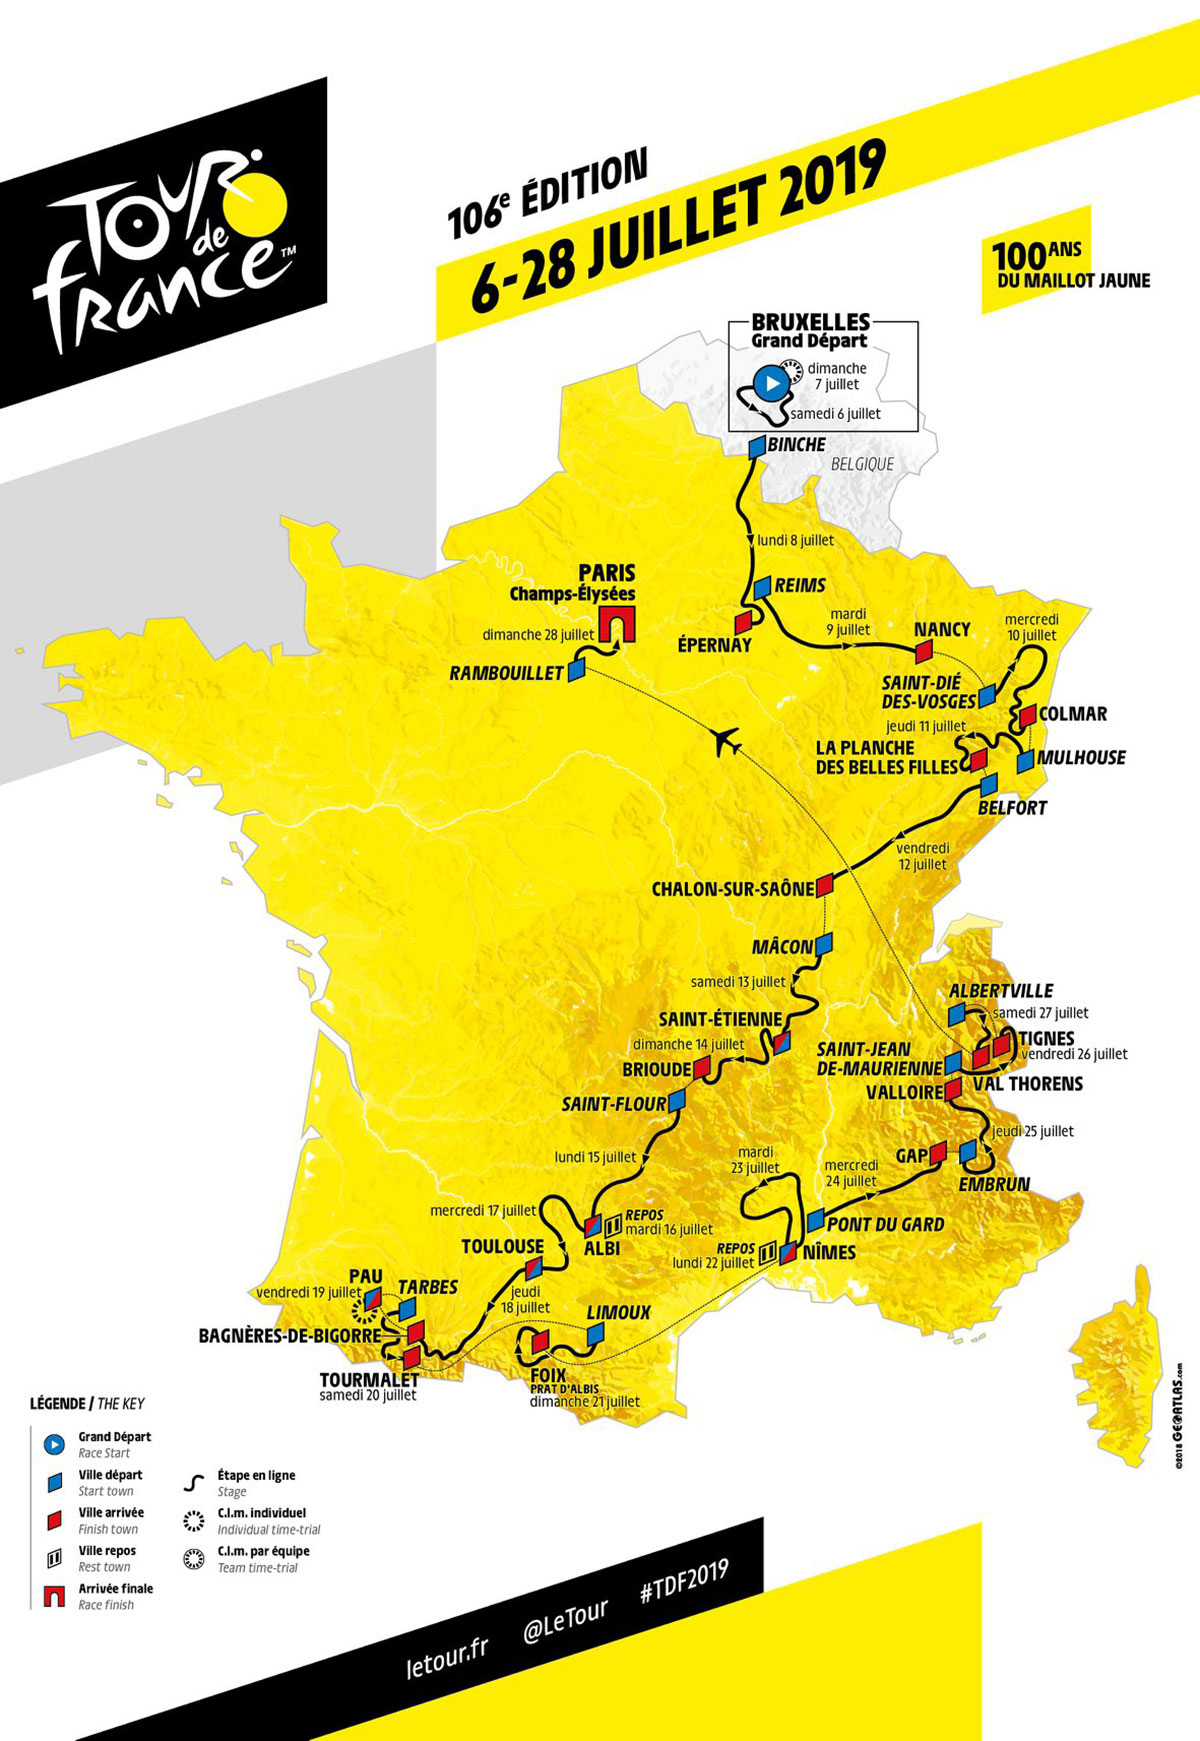 Il percorso del Tour de France 2019